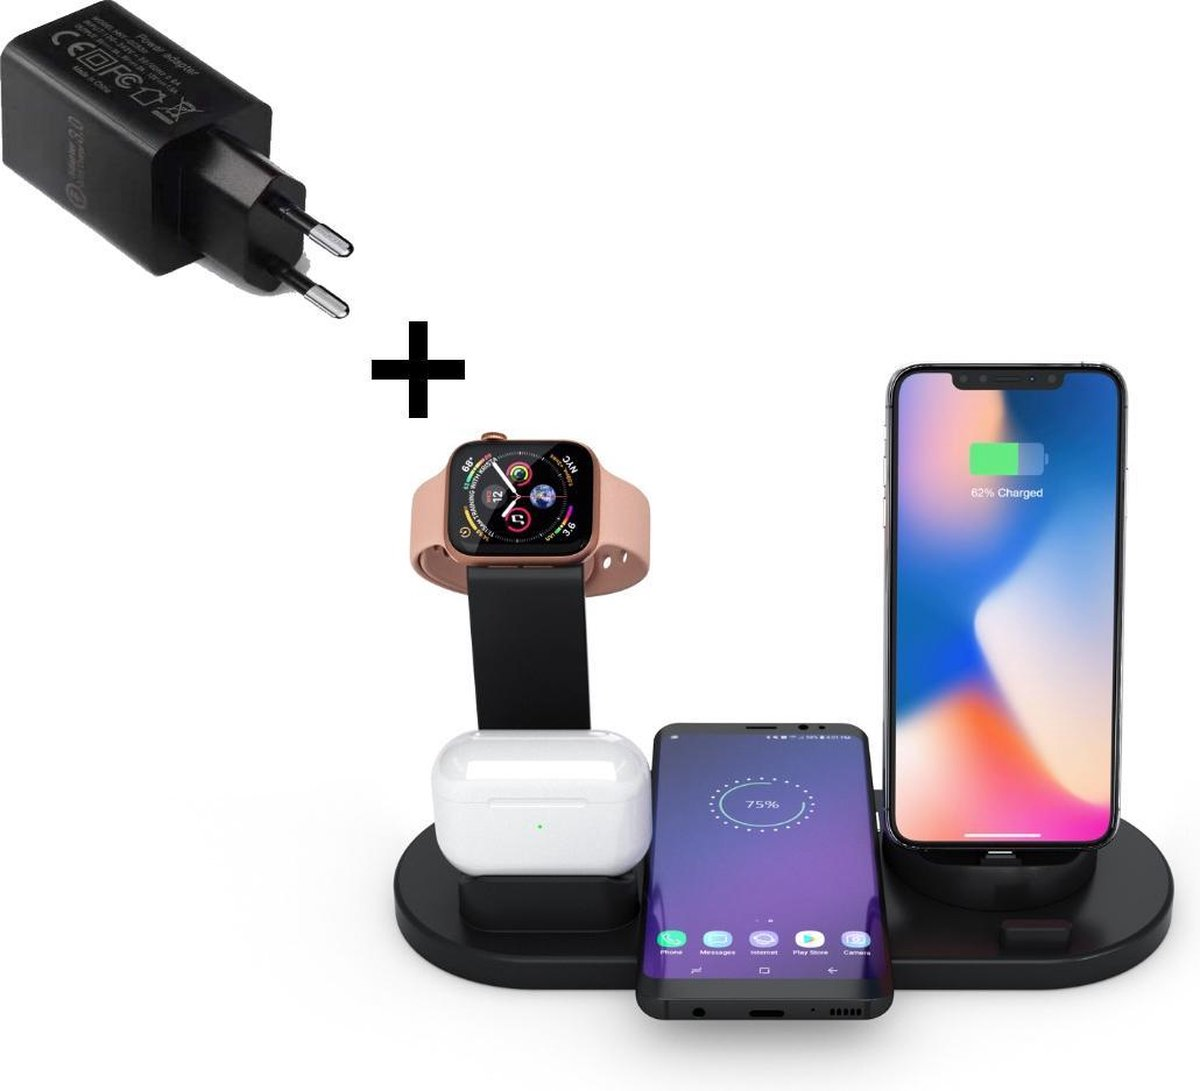 4 in 1 oplaadstation Iphone- Incl. Fast charger- Apple, Samsung en Android- Dockingstation- QI draadloze oplader- Wireless charger- Apple oplaadstation- Telefoon oplader- Apple Watch- AirPods oplader